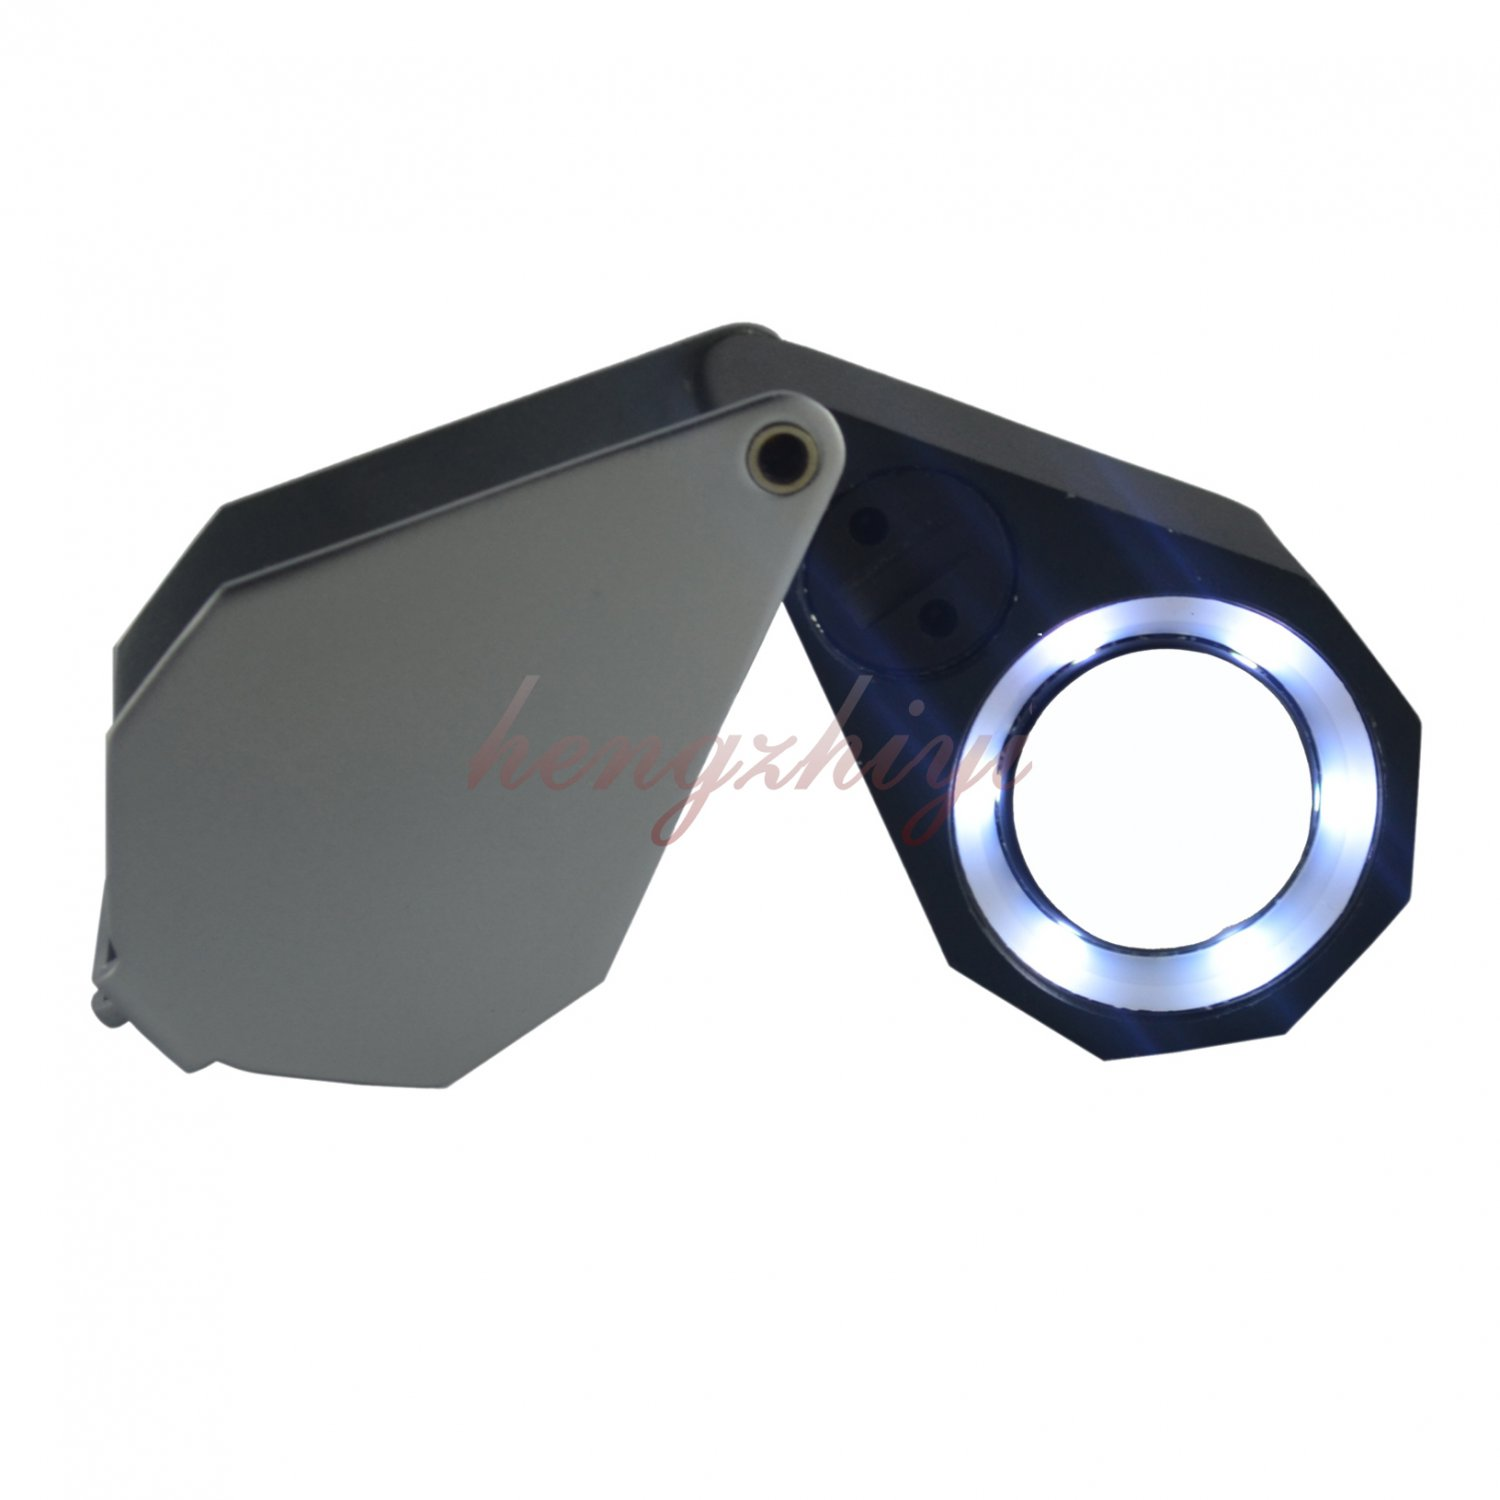 10X Diamond Gem Loupe w Six LED Light + 21mm Achromatic Aplanatic Len + Leather Case, Free Shipping